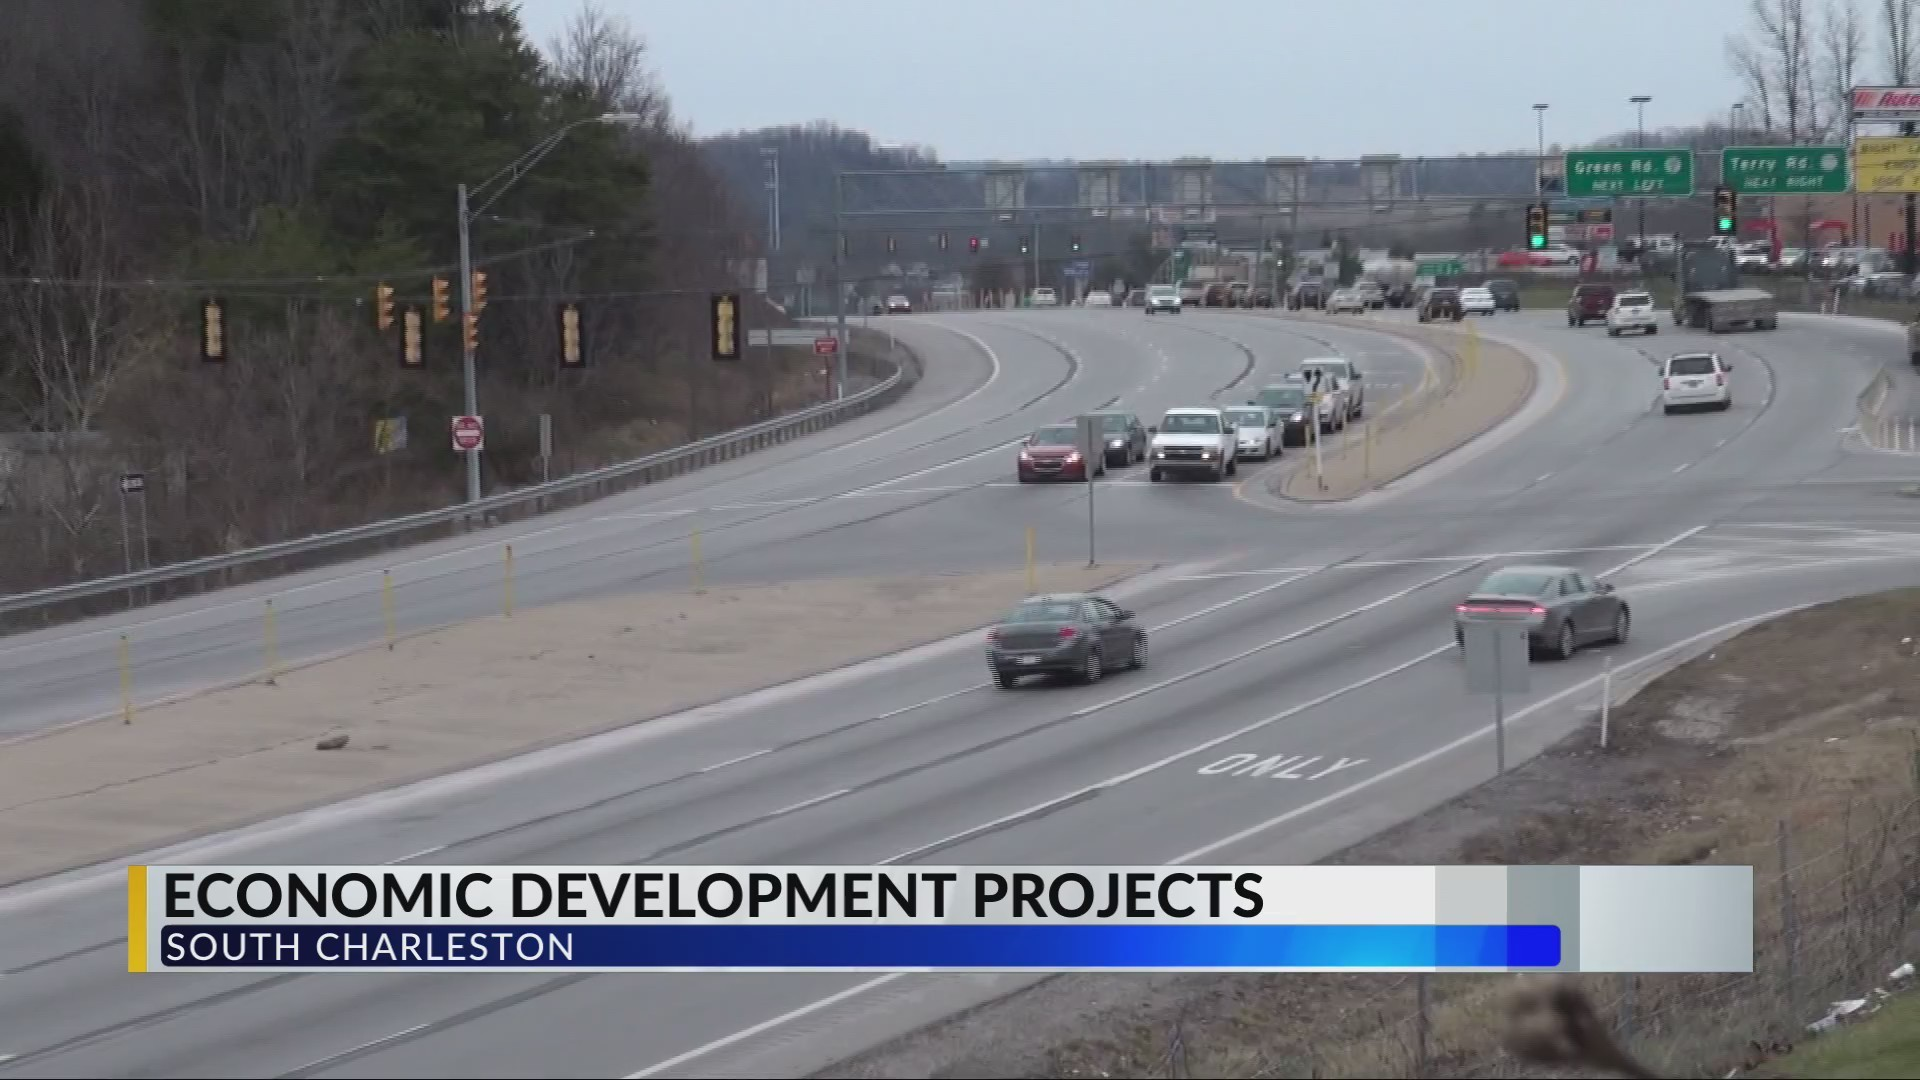 New South Charleston Projects to Bring Big Economic Gain